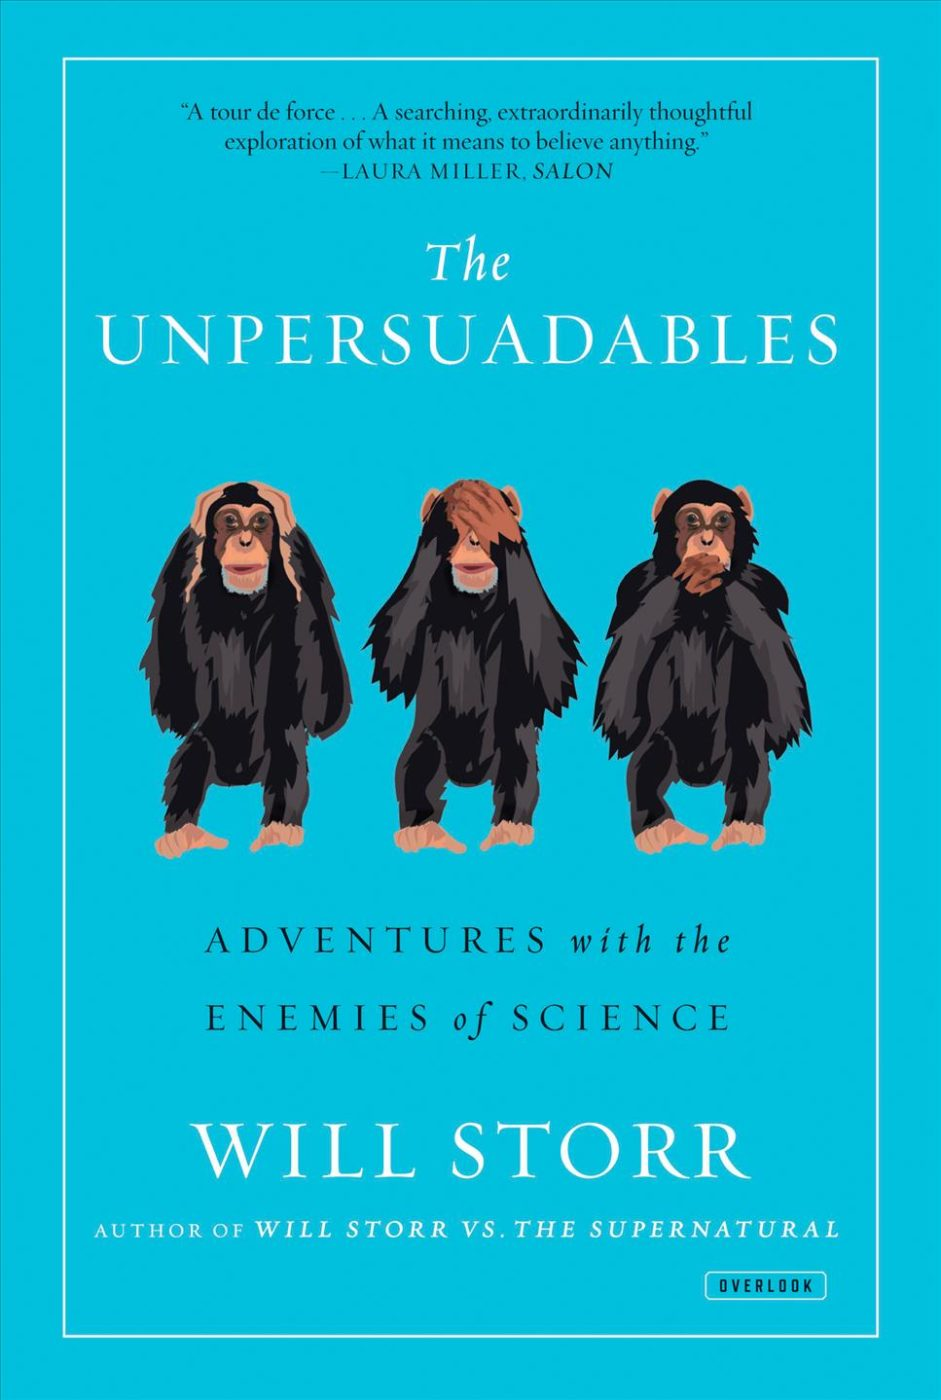 Will Storr book cover